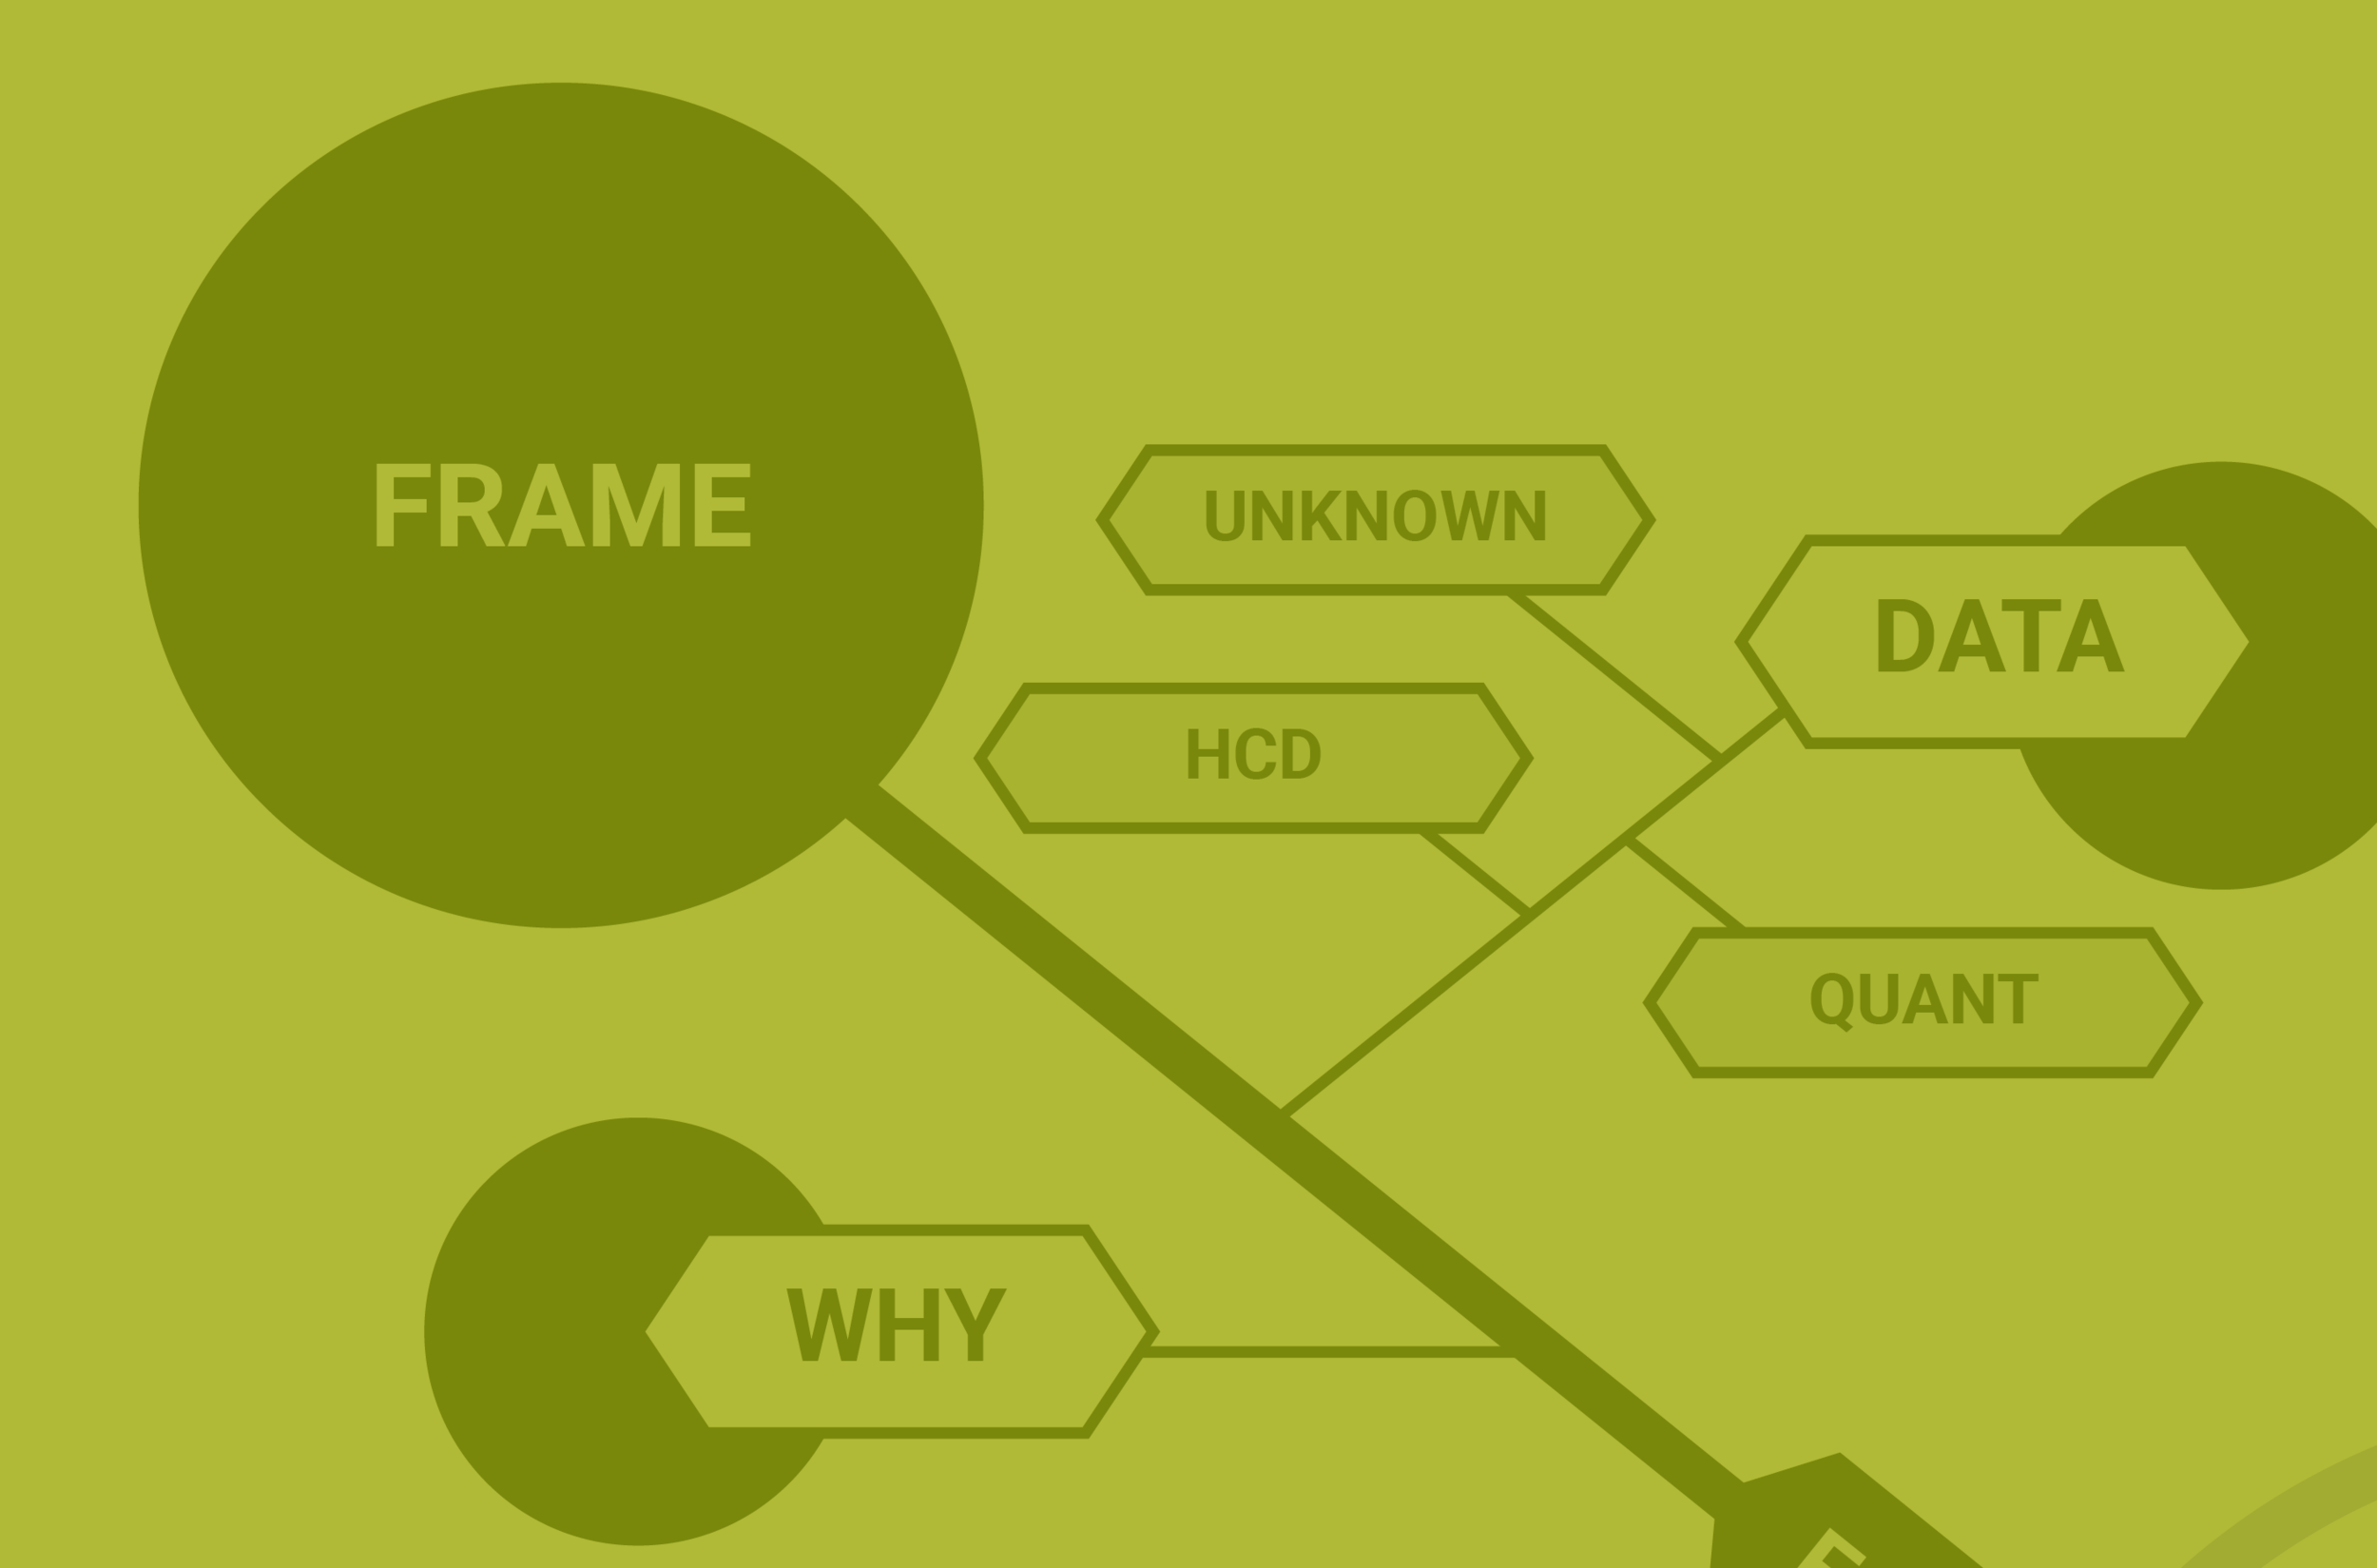 Frame - We work closely with the you to frame your understanding - and intended impact - on the challenge.This involves rapid qualitative and quantitative research to help set the scene and agree on a course of action.